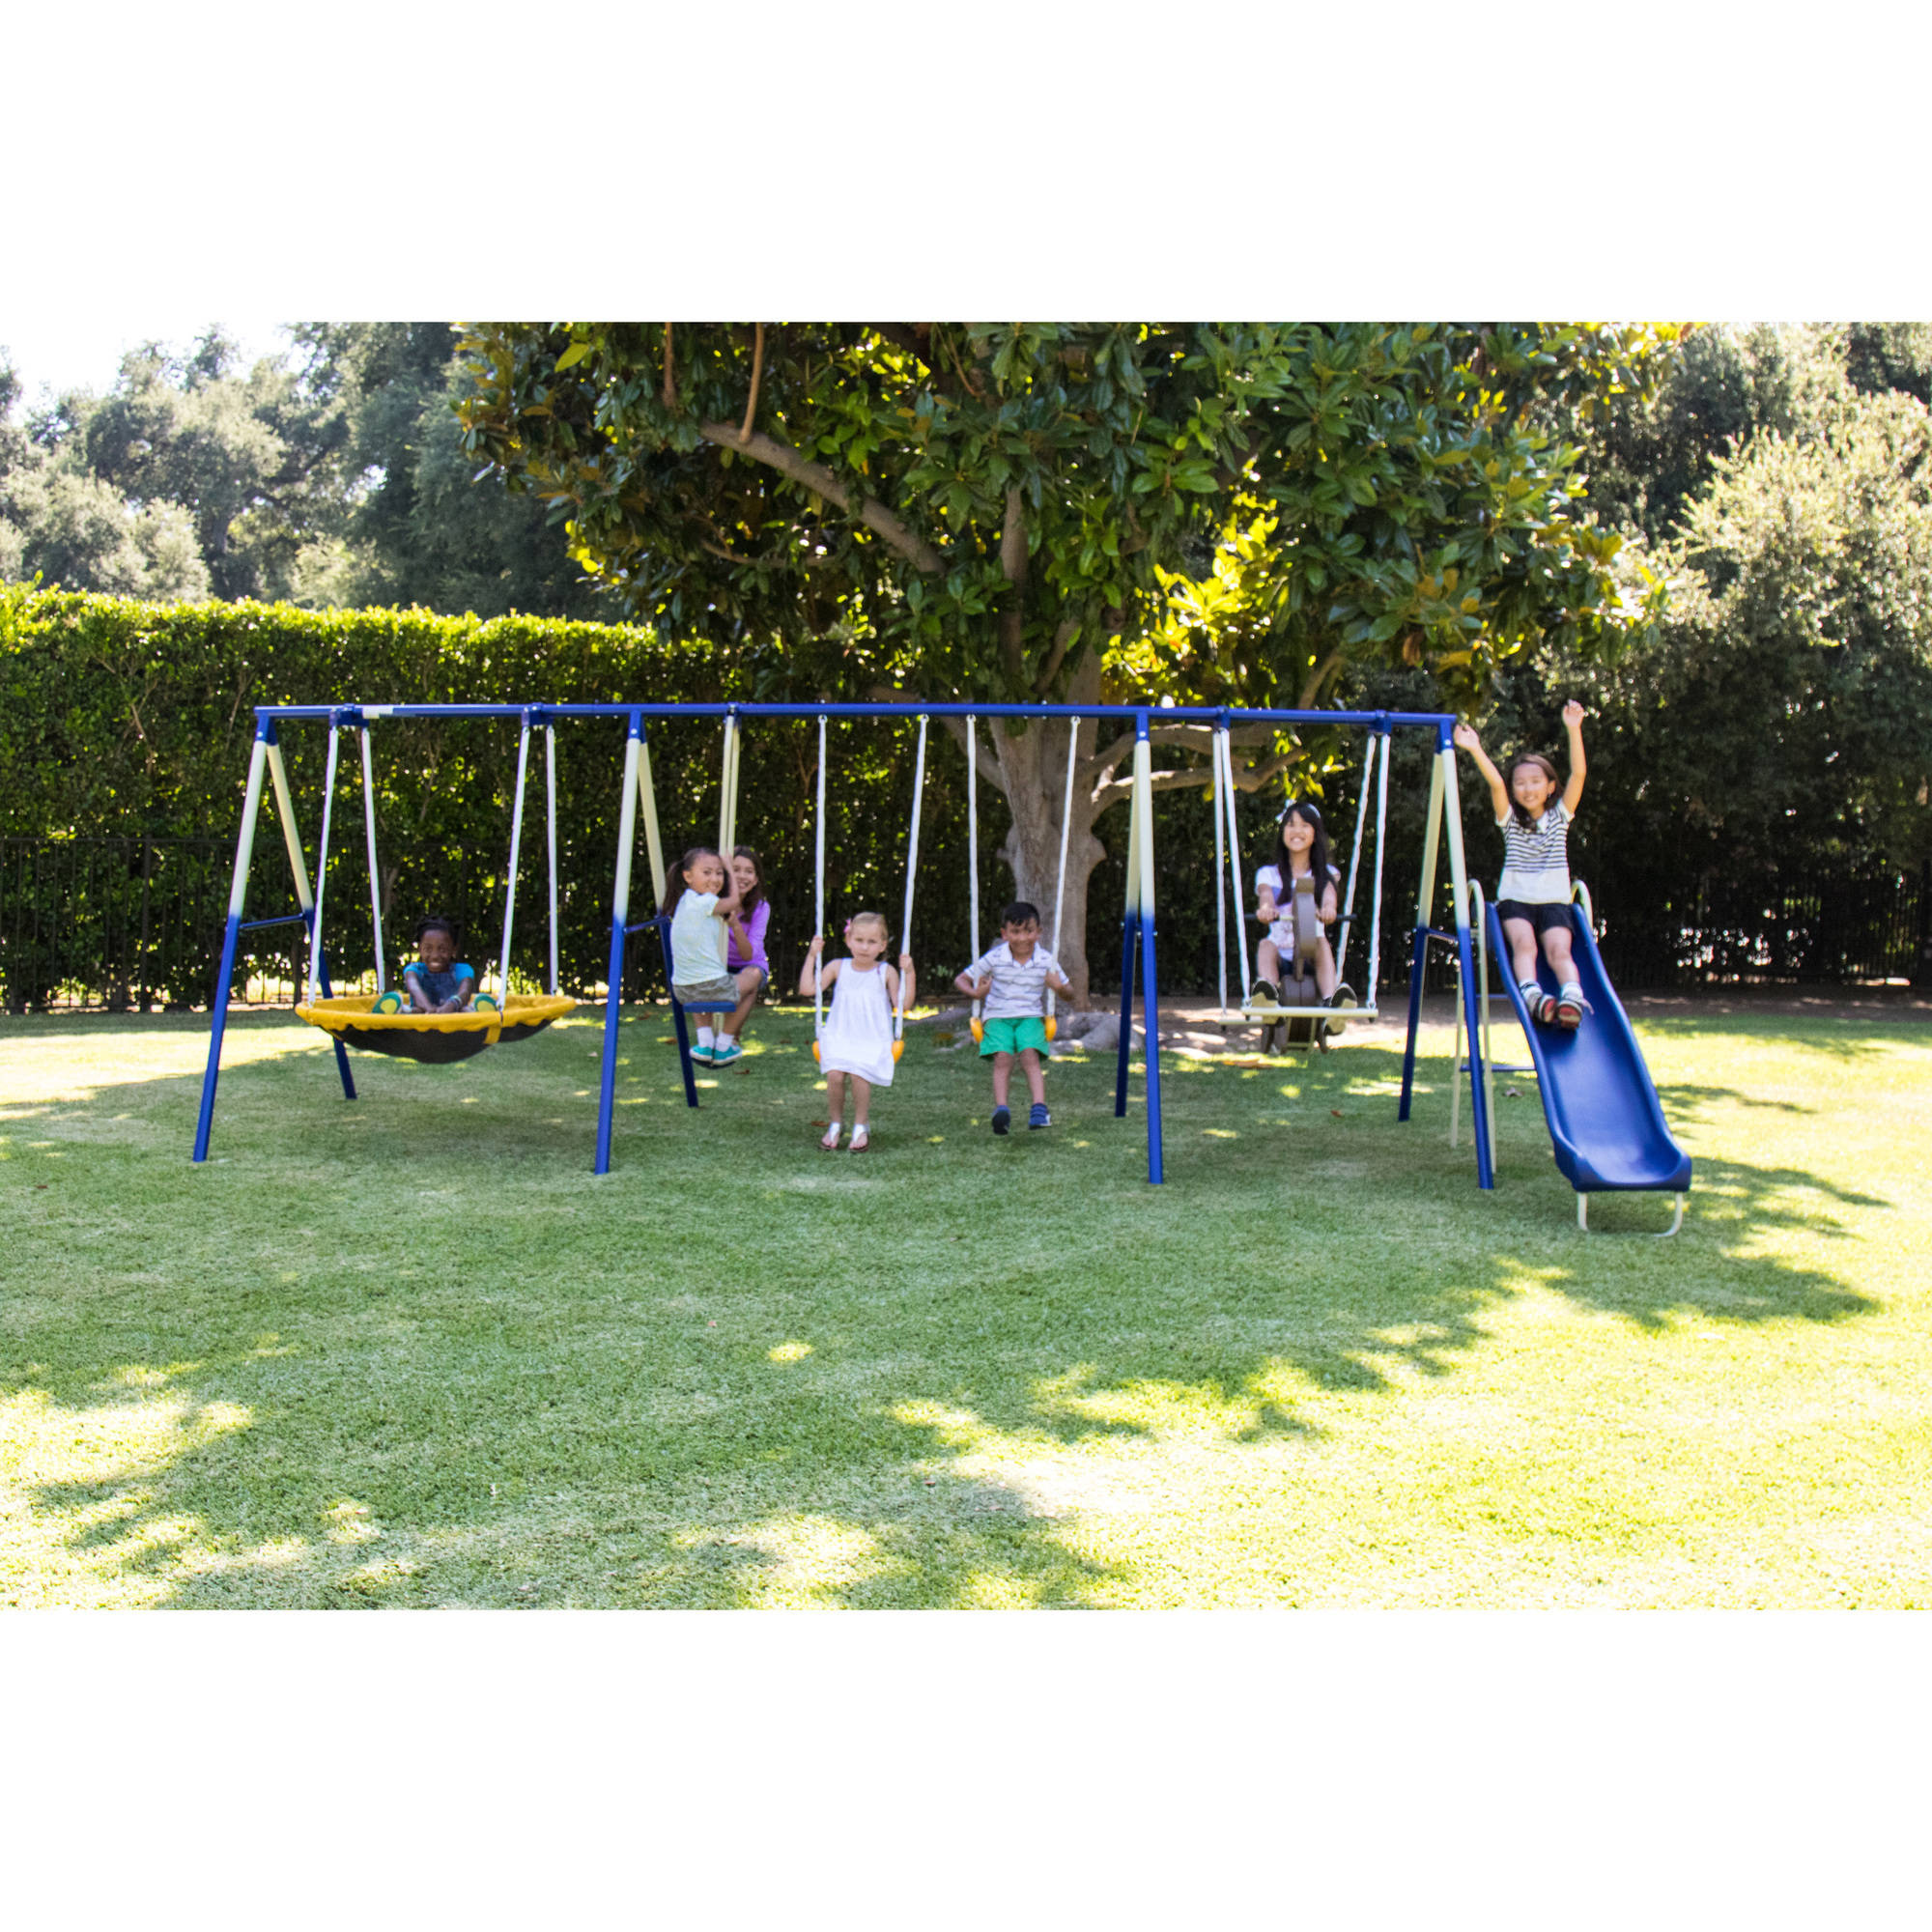 RONA carries Outdoor Recreation & Play for your Outdoor renovation/decorating projects. Find the right Playsets and Swing Sets to help your home improvement project. Find the right Playsets and Swing Sets to help your home improvement project.